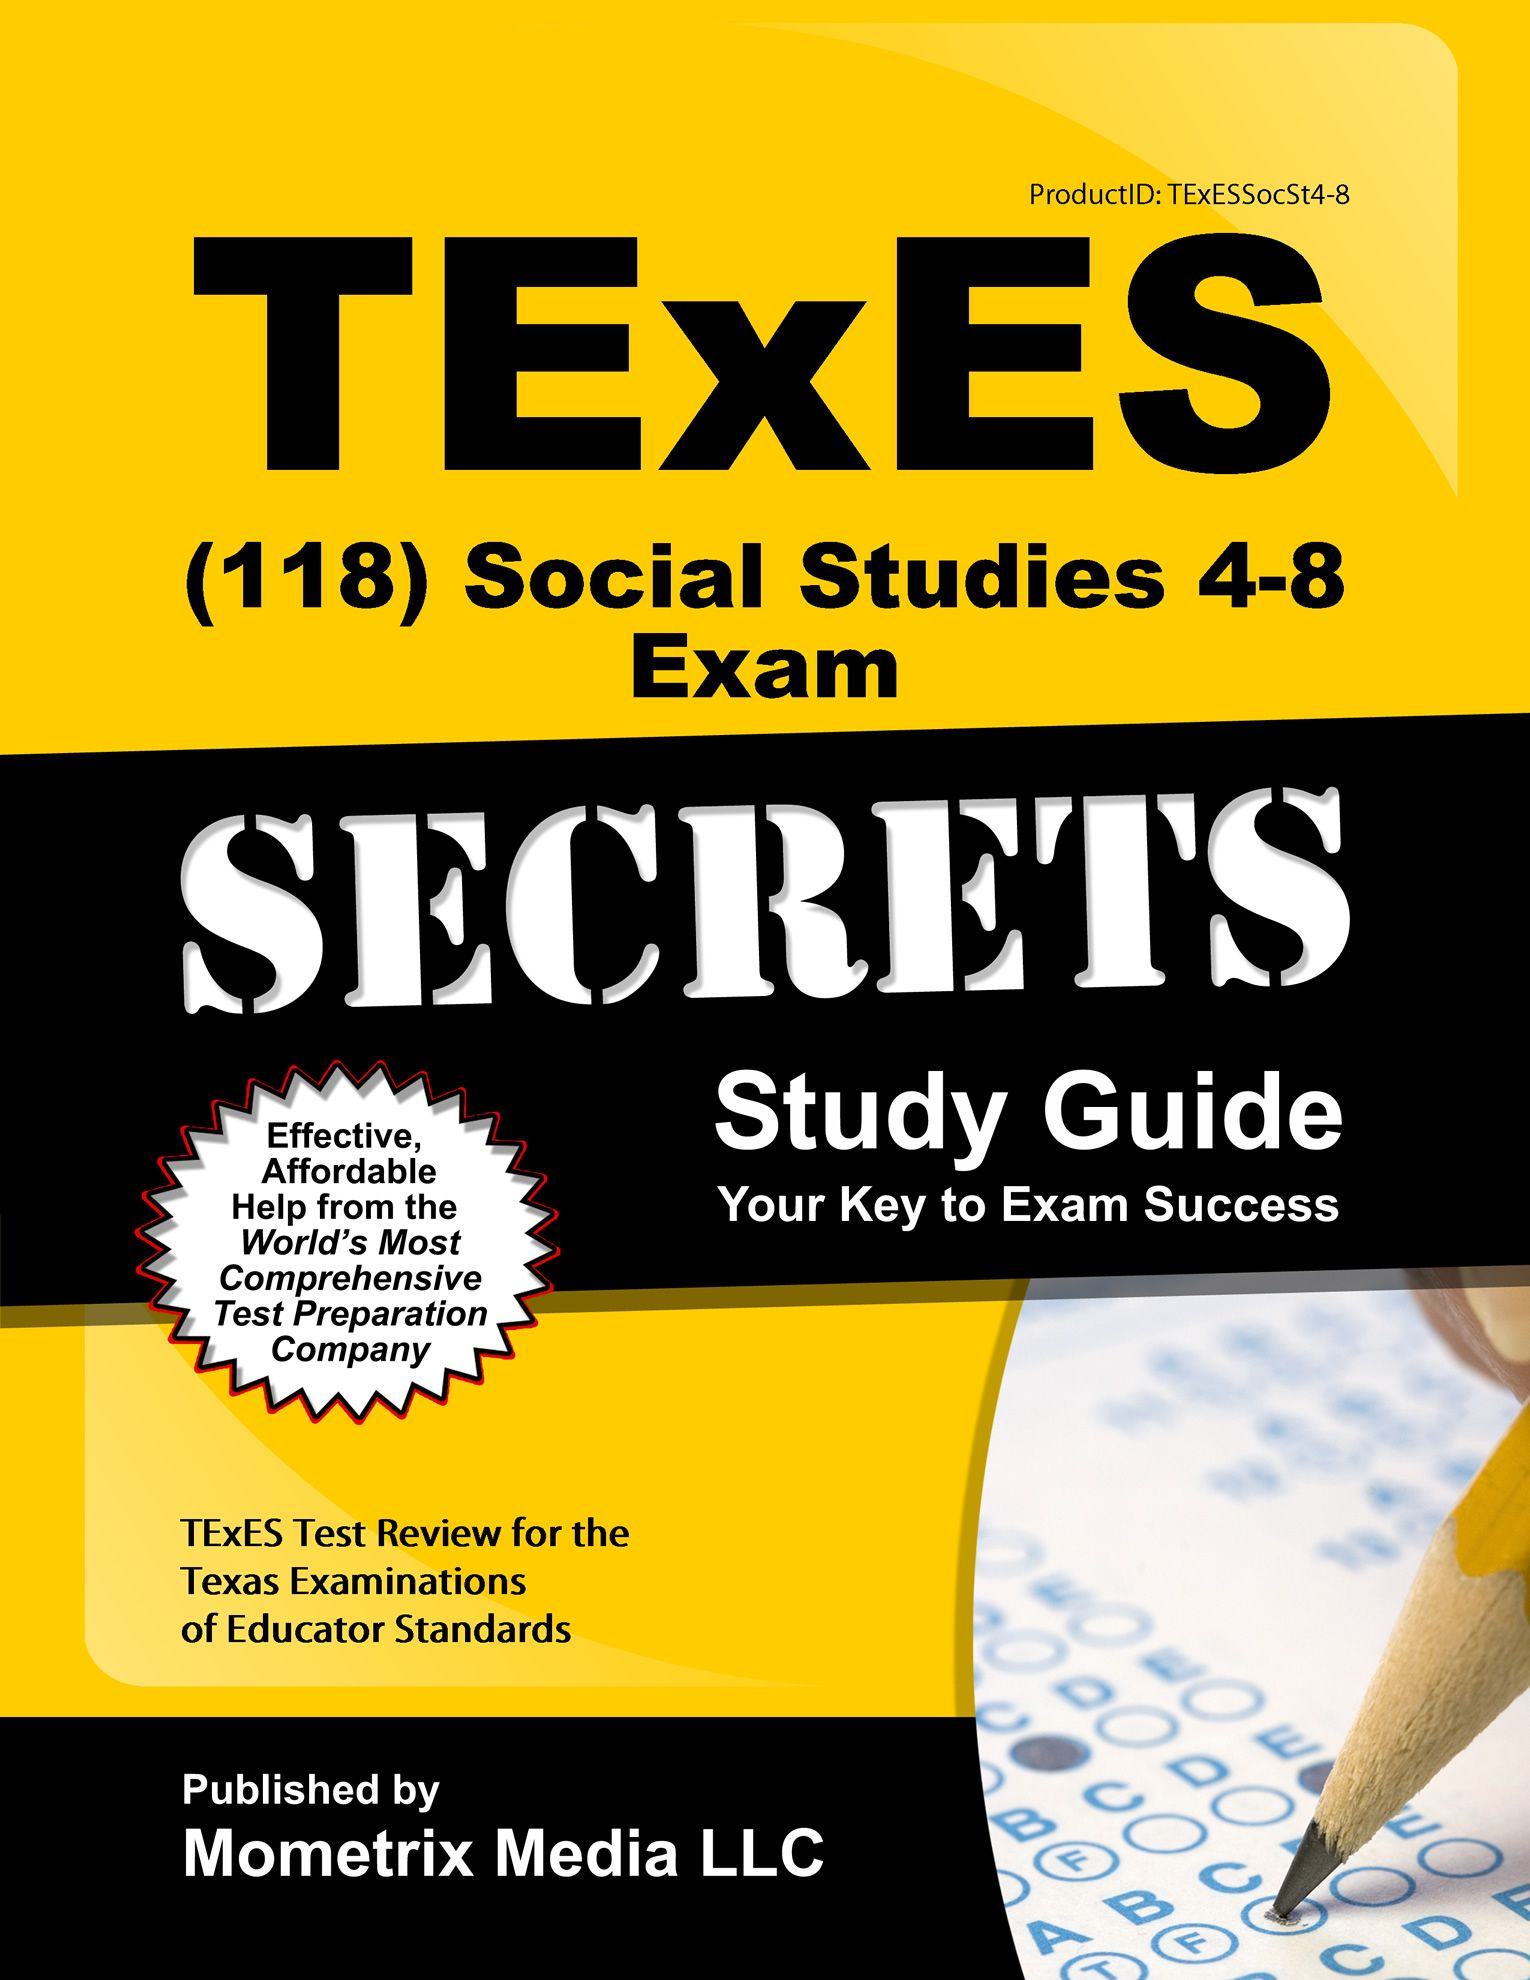 Texes 118 social studies 4 8 exam study guide httpmo media texes 118 social studies 4 8 exam study guide http xflitez Image collections